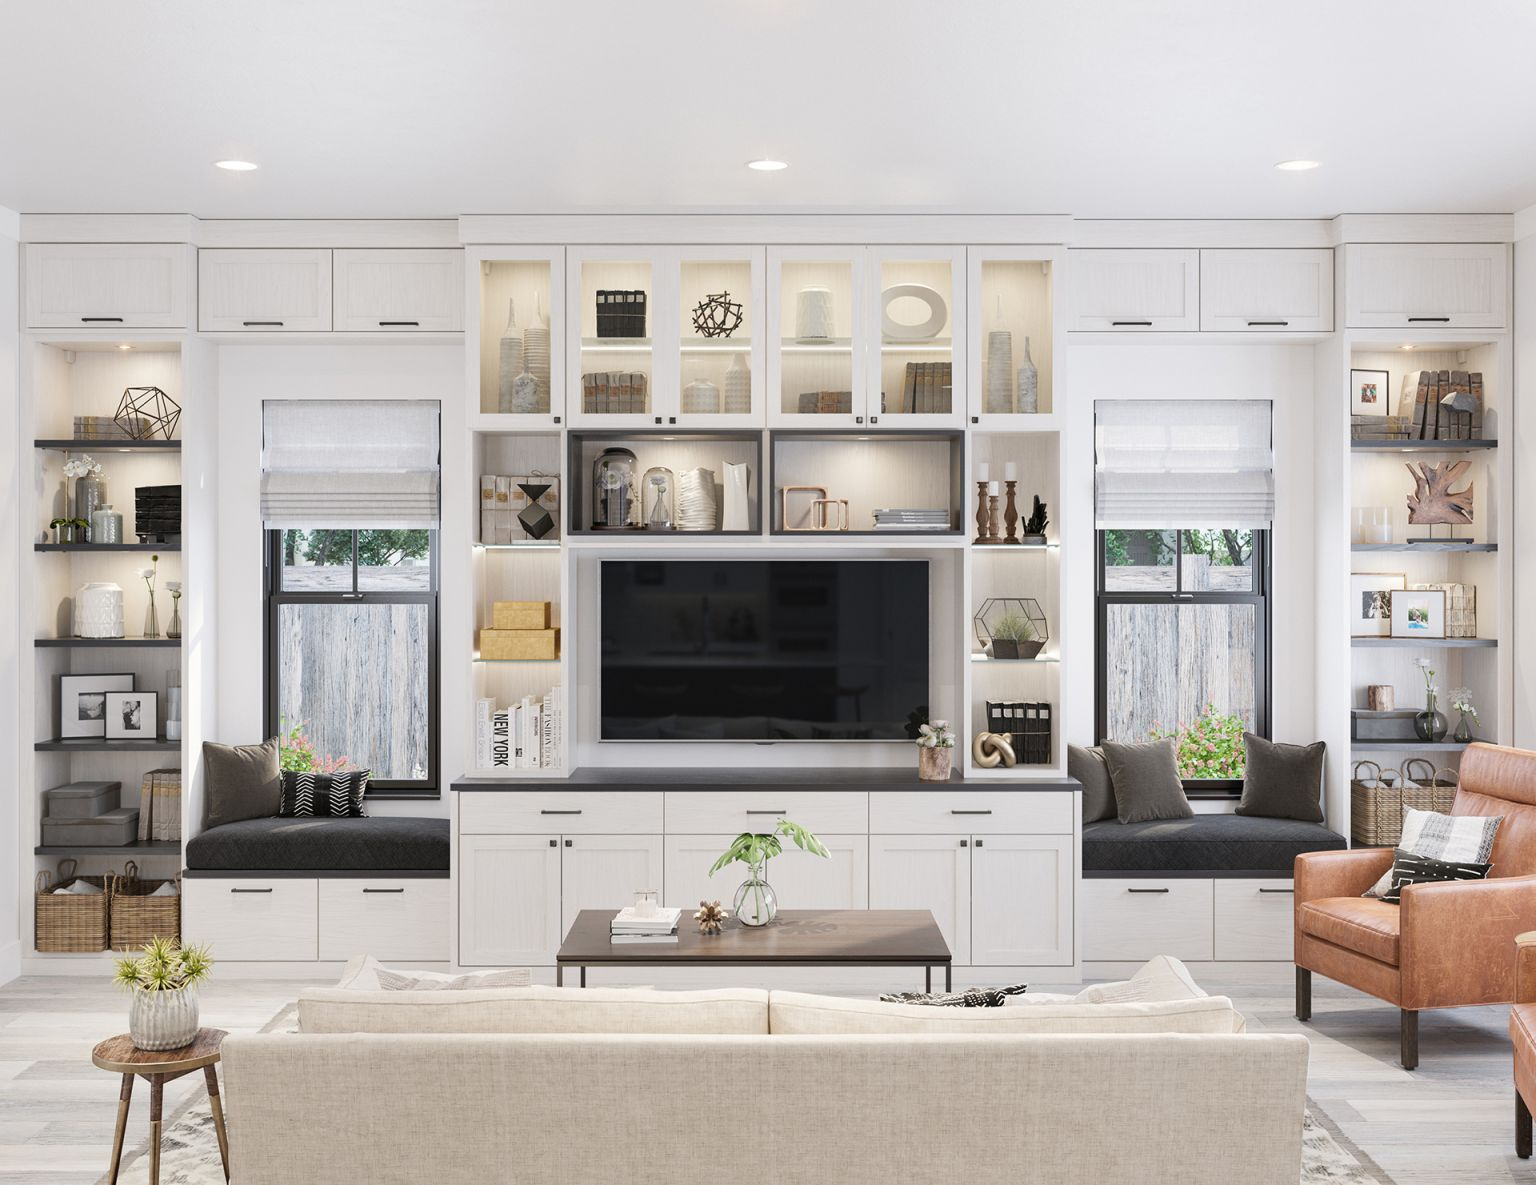 Family Room Cabinets & Storage Solutions | California Closets with regard to Living Room Storage Cabinet With Doors